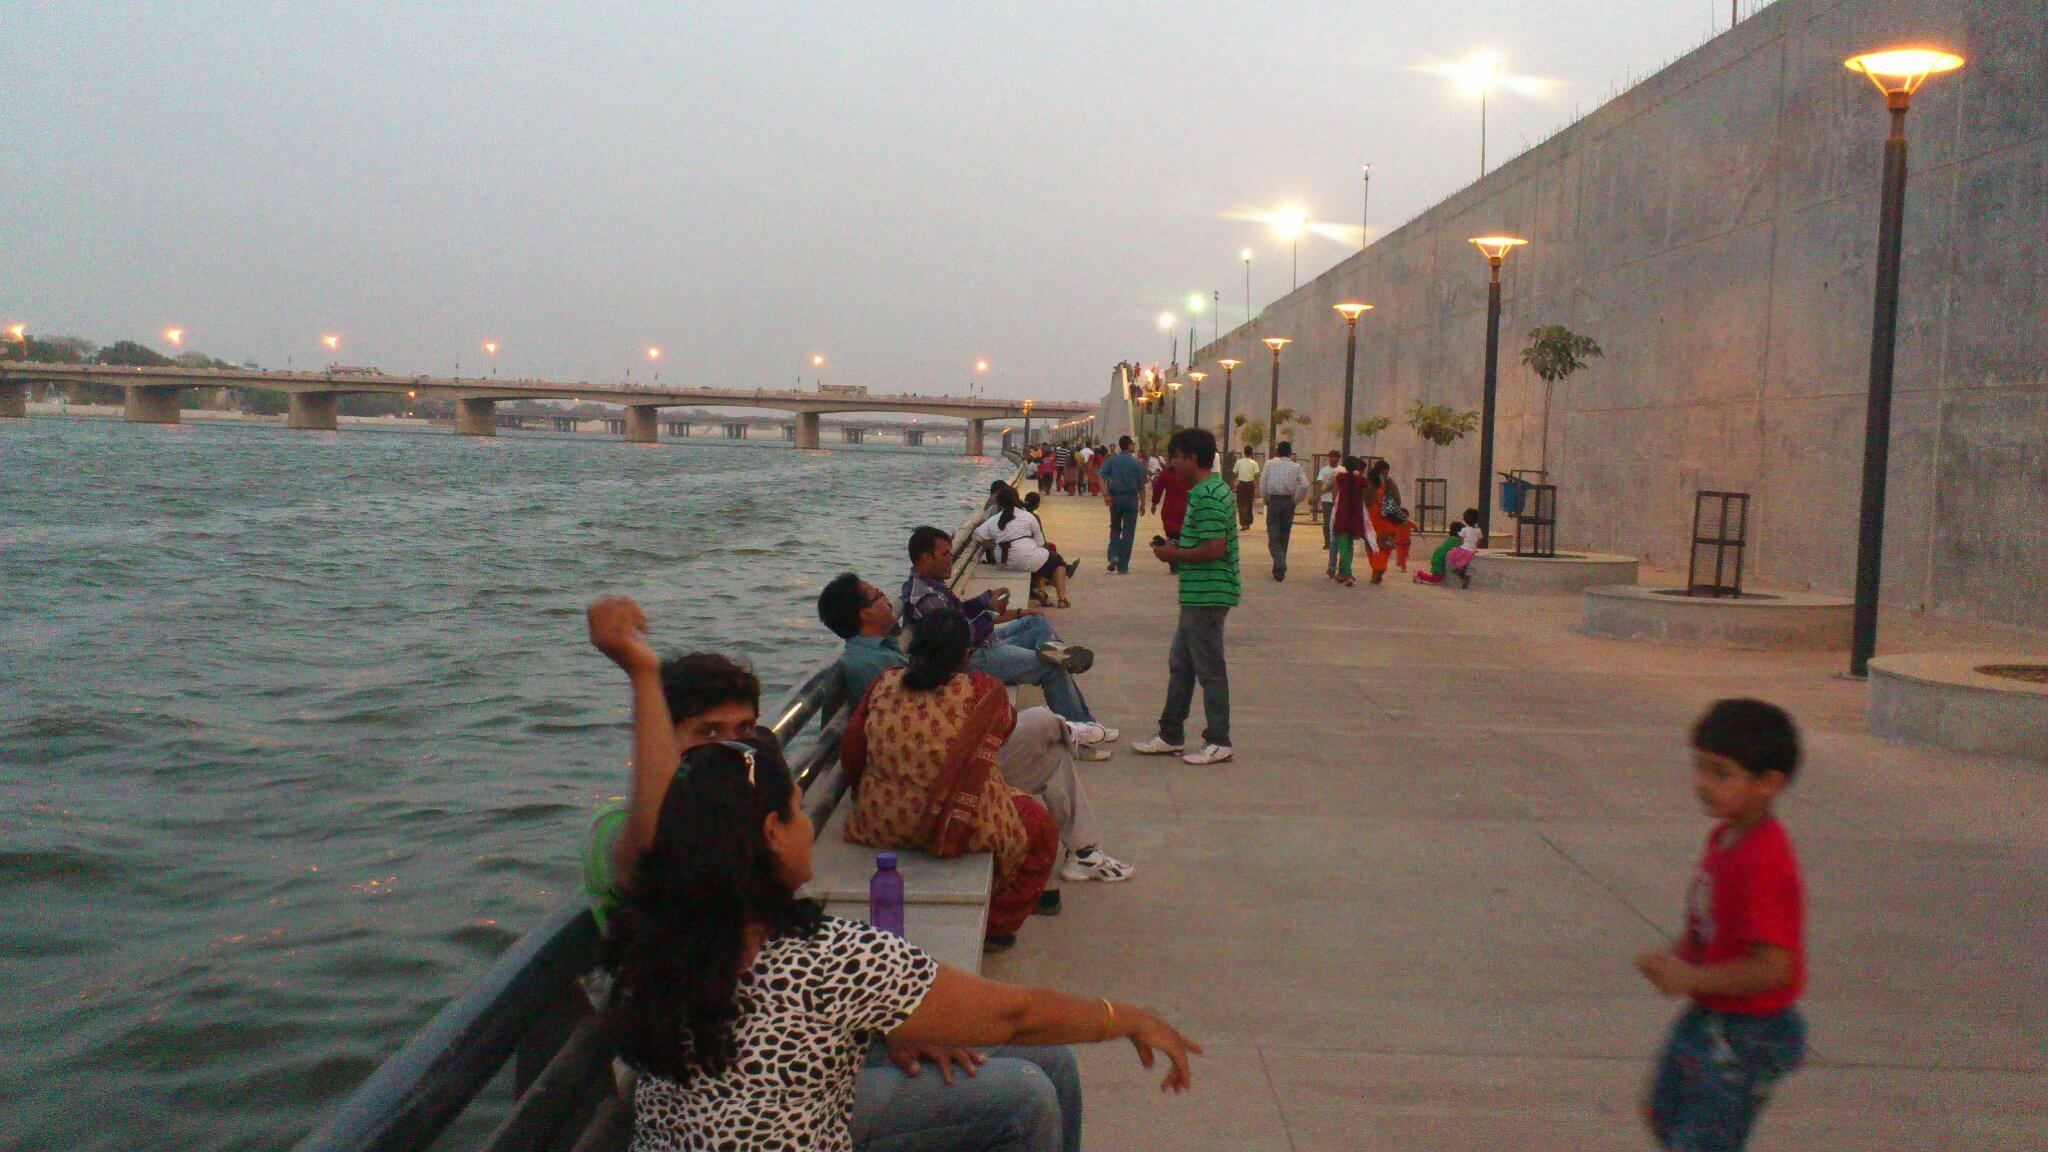 View_of_Sabarmati_Riverfront_Ahmedabad